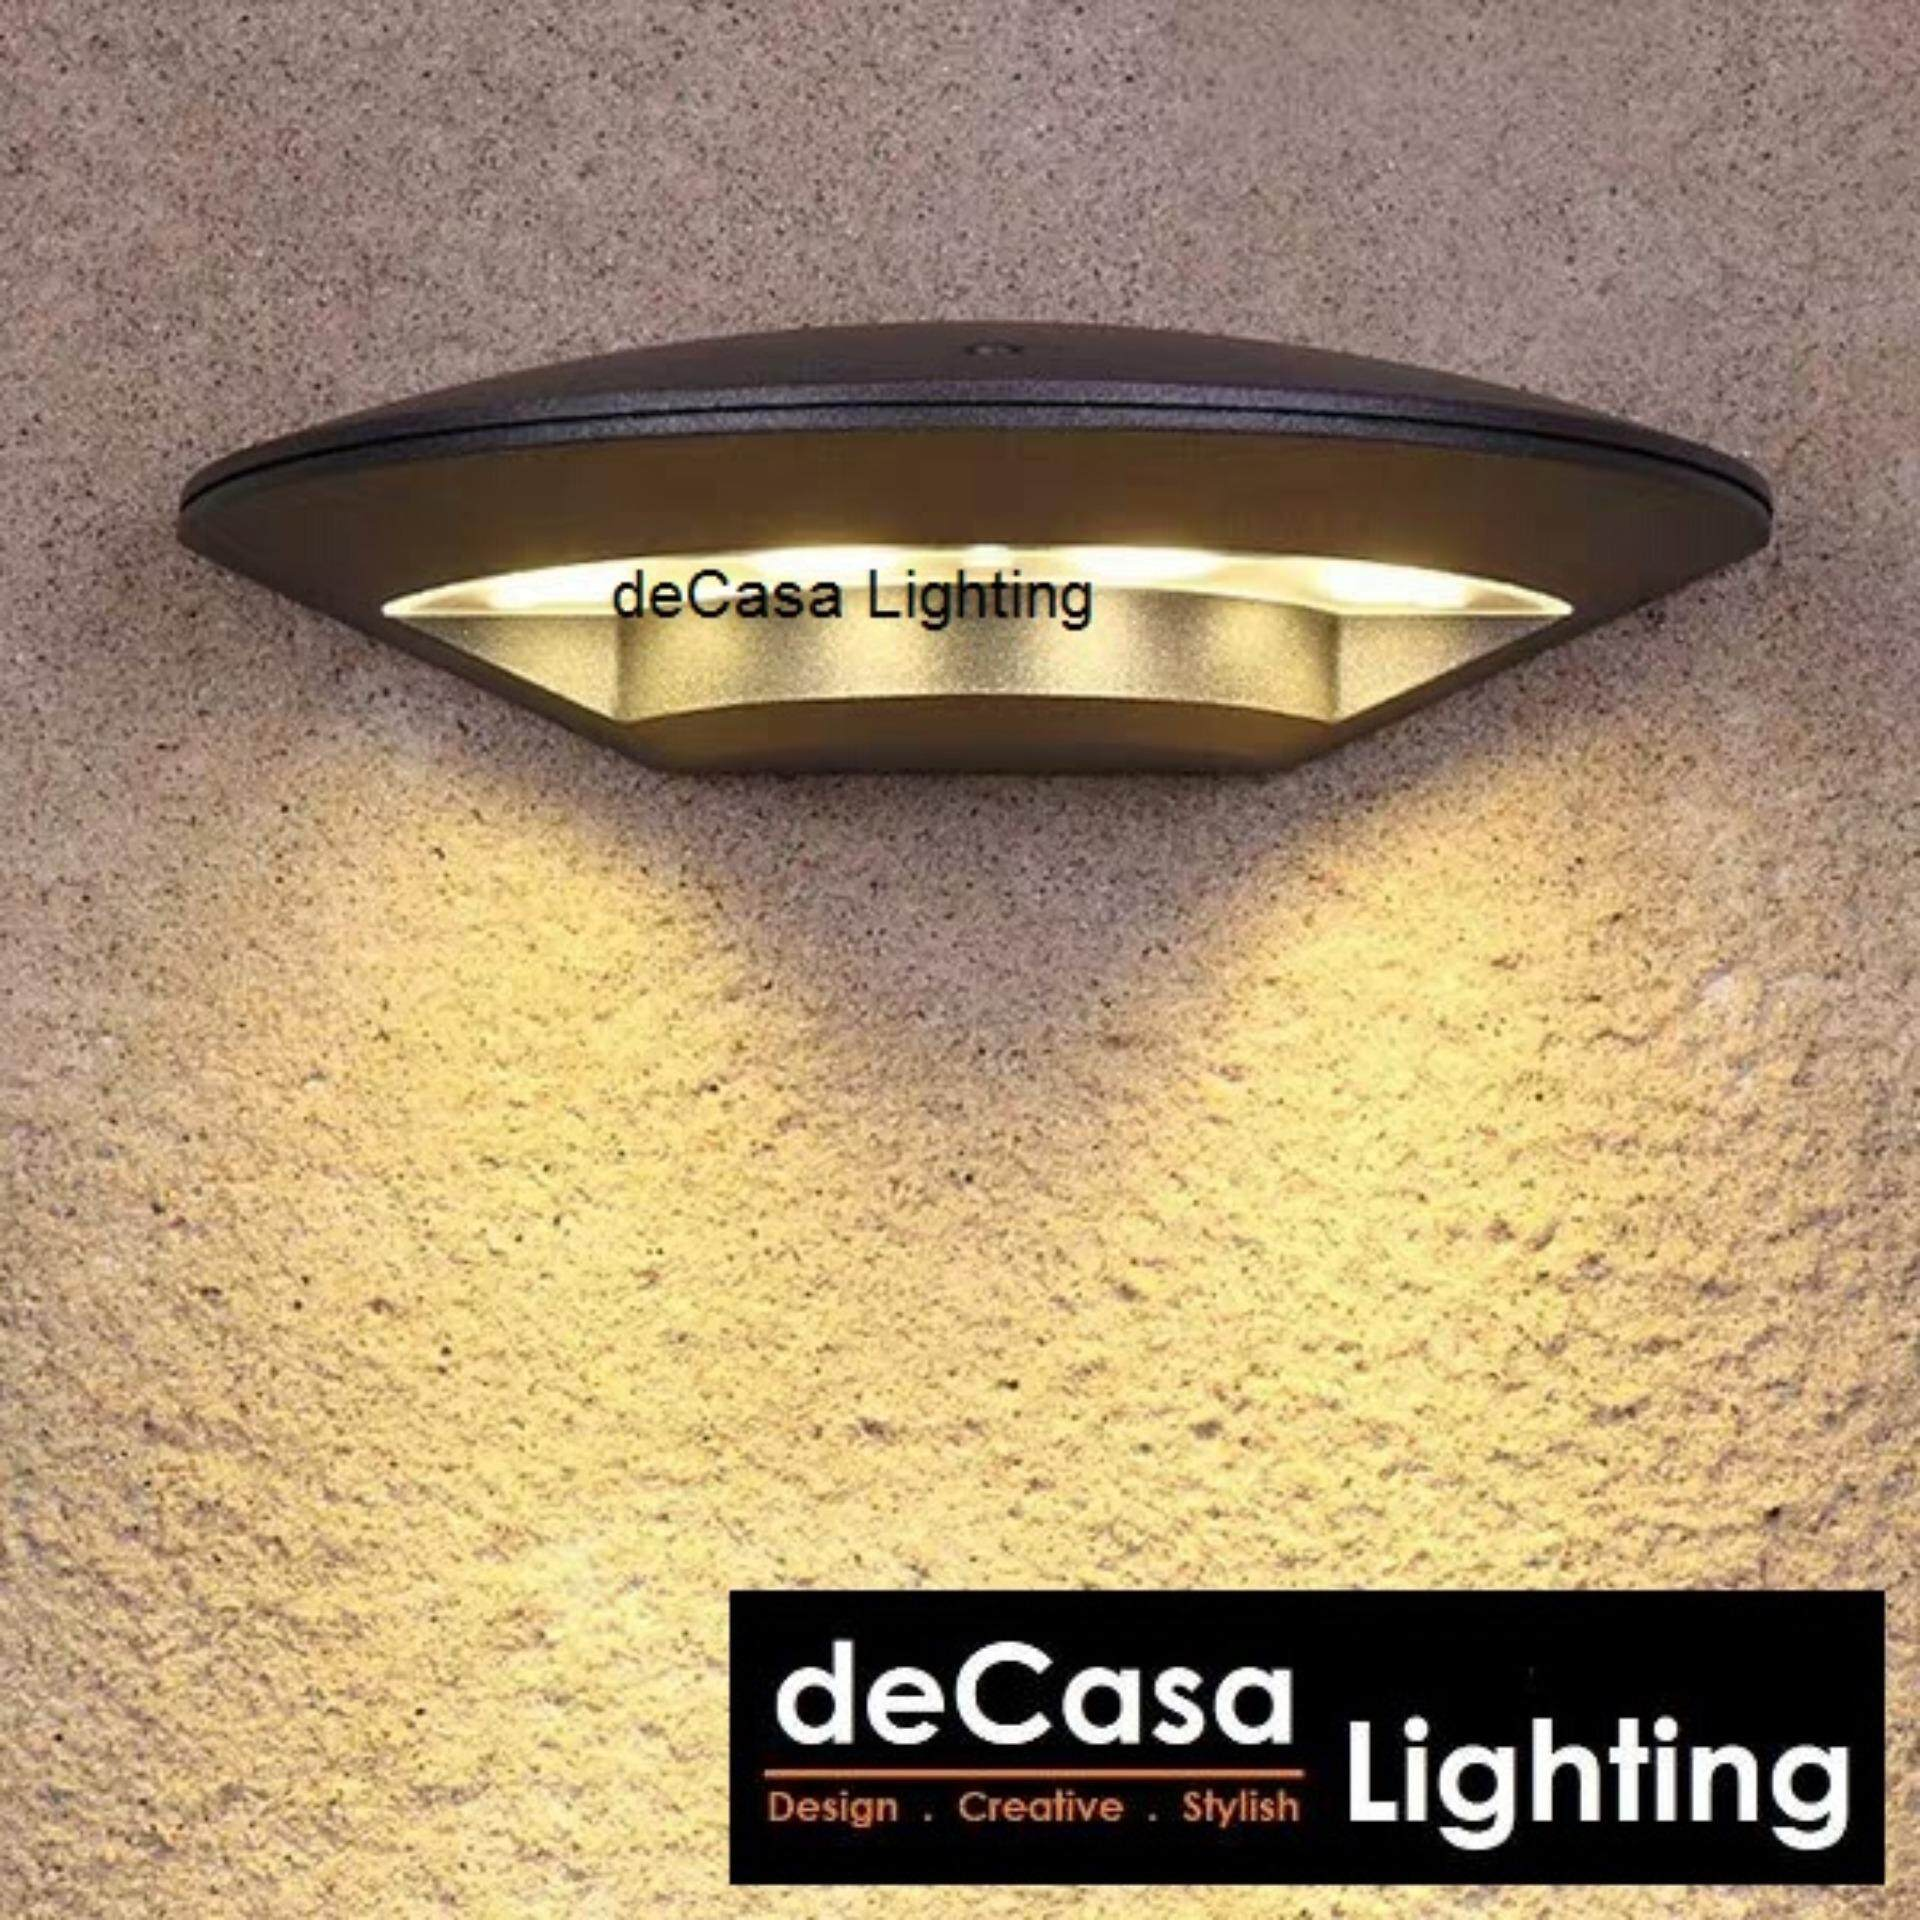 Led Outdoor Wall lights Best Seller wall decorative Outdoor wall lights DECASA Outdoor Weather proof (OD-W3394/4W-SG)